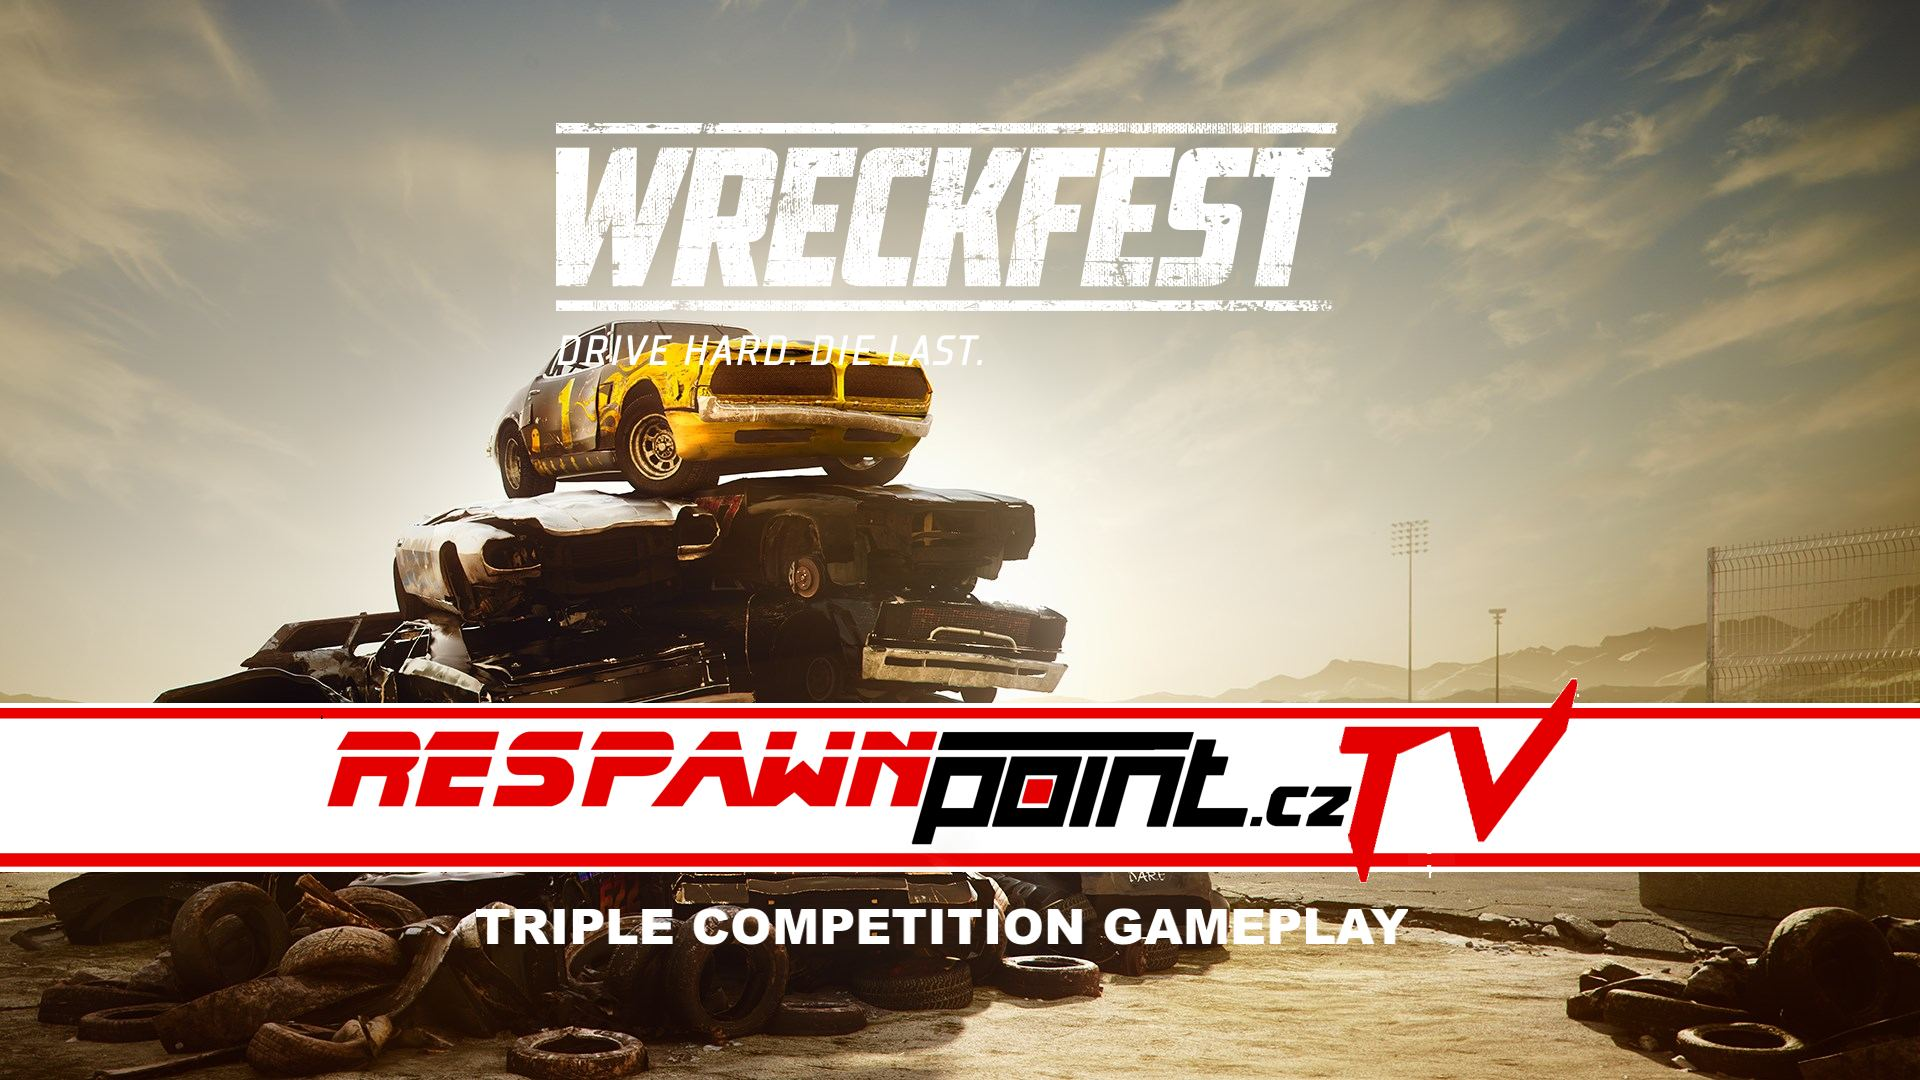 Wreckfest – Triple Competition Gameplay